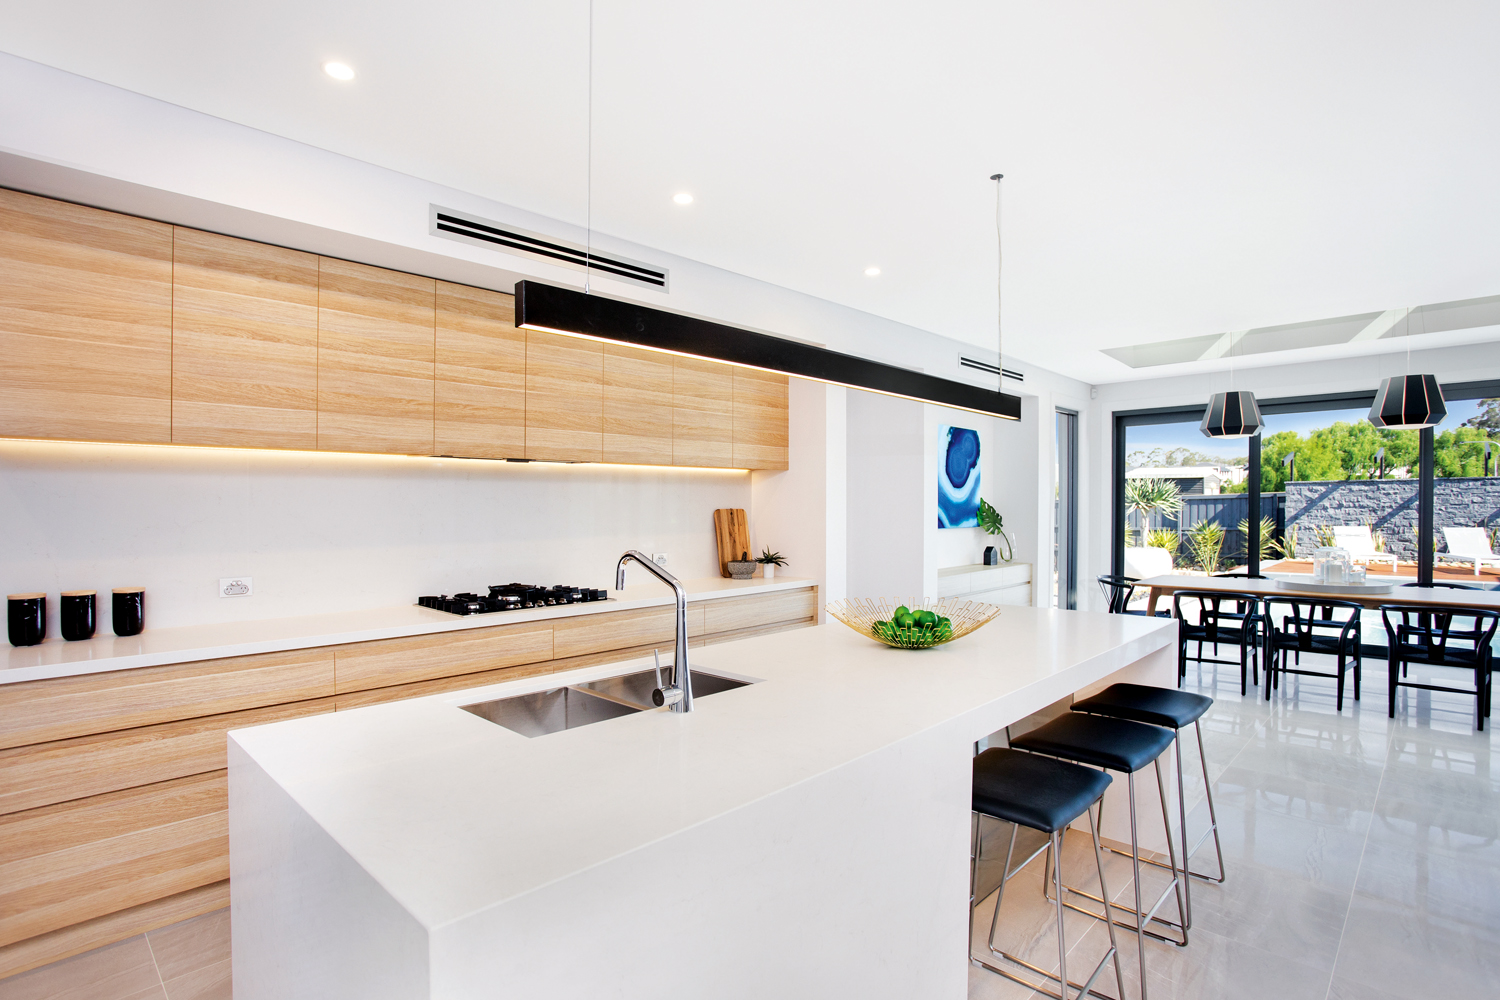 design evolution australian family home completehome remodels amp additions evolution home design